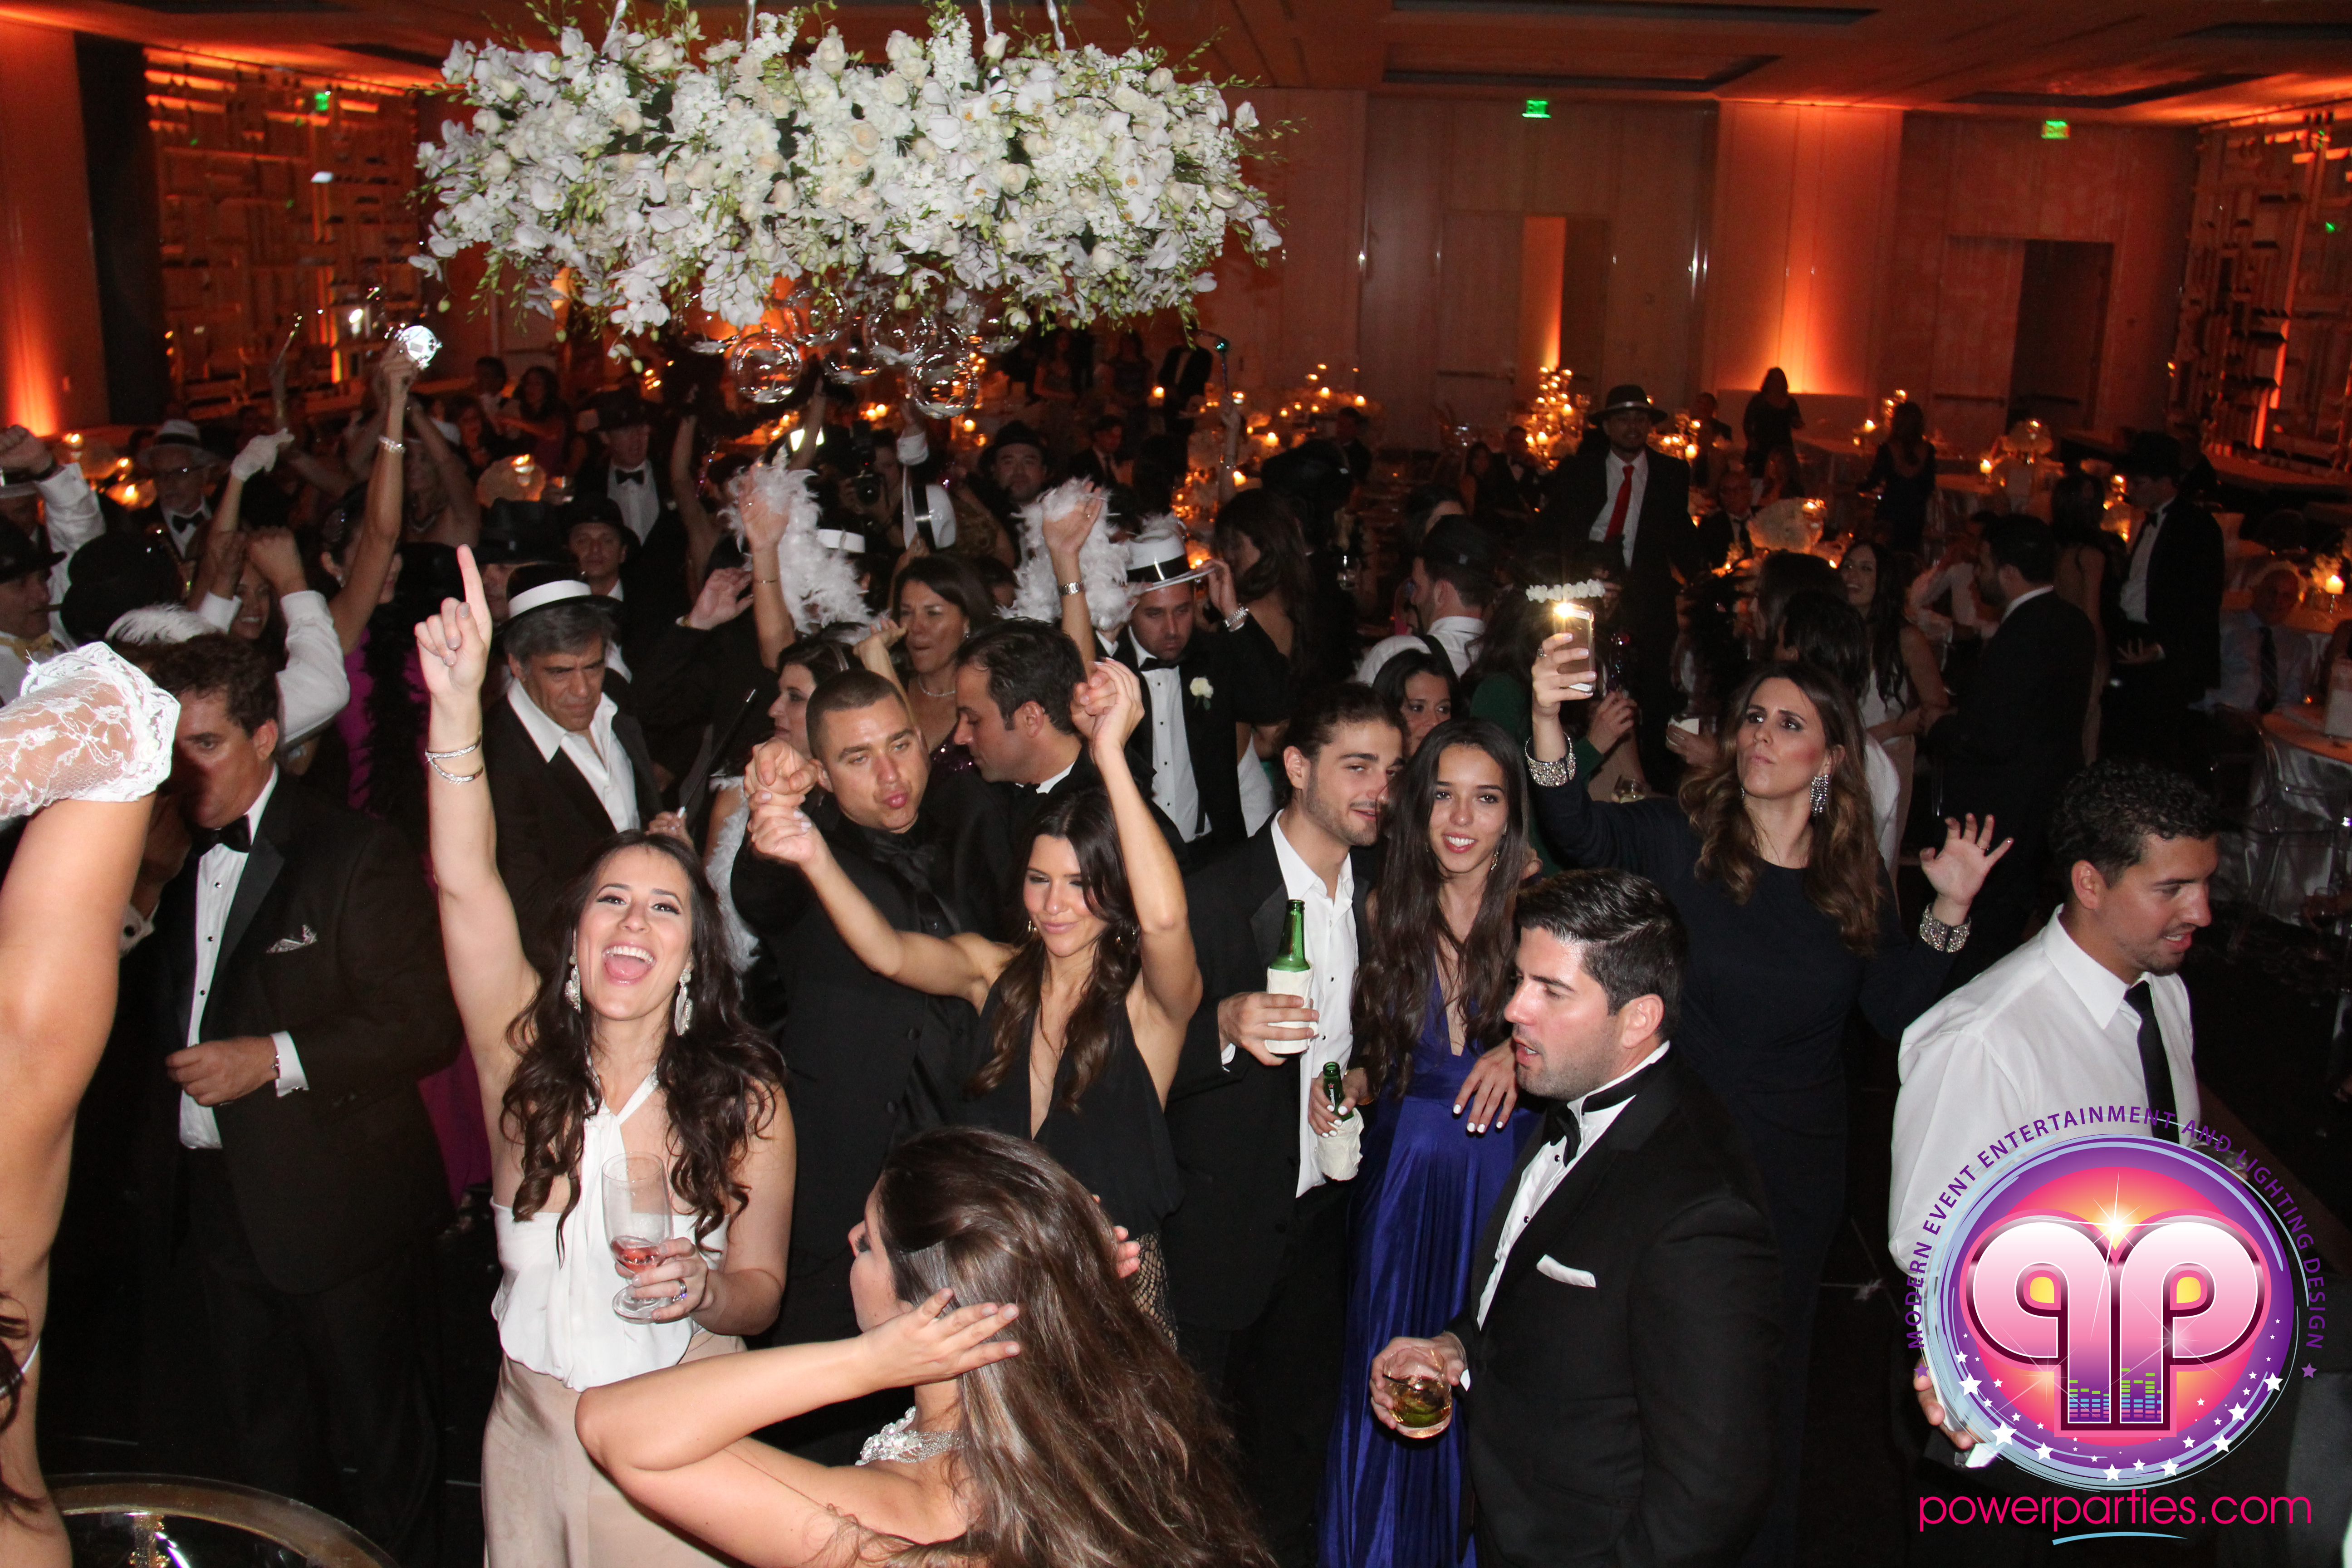 Wedding DJ Prices Miami FL Power Parties Power Parties DJs Lighting